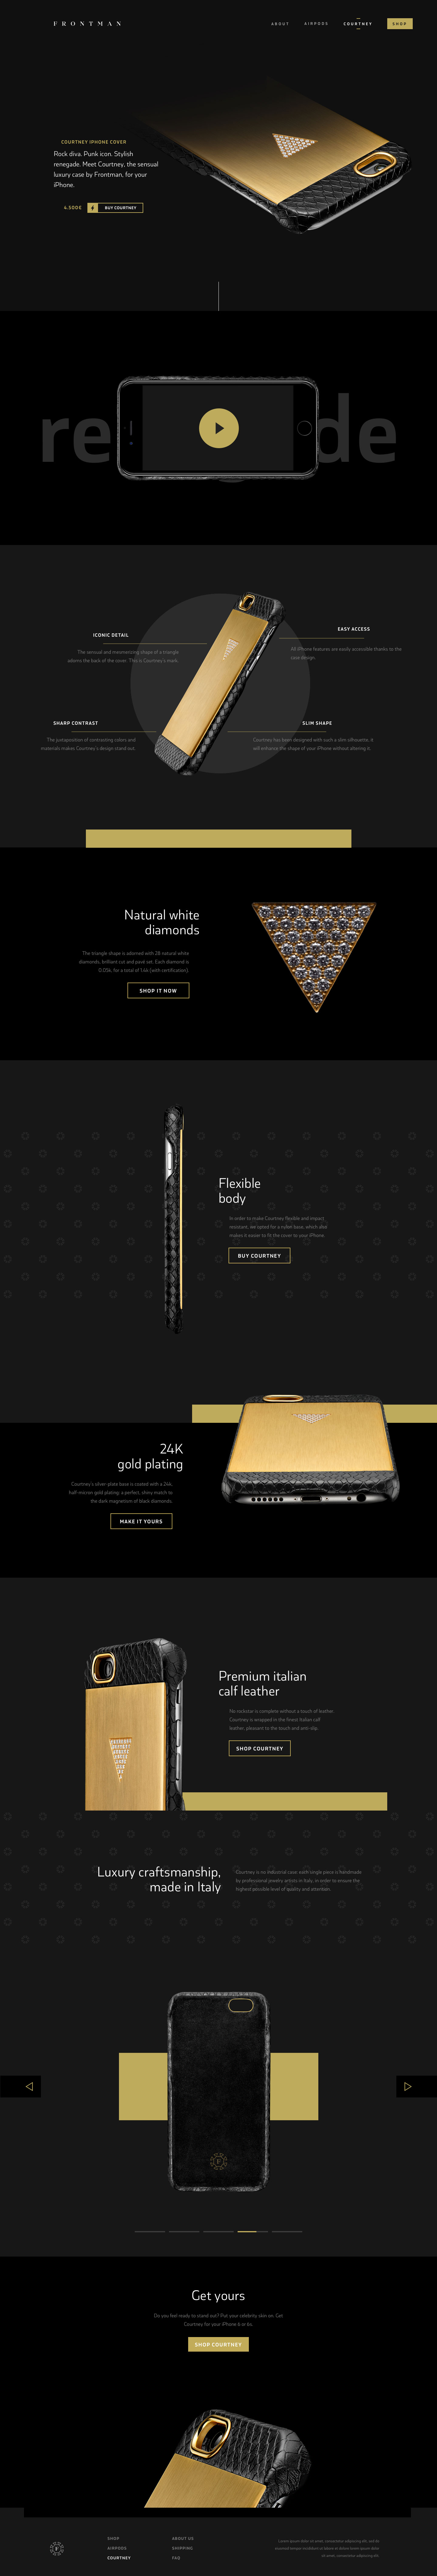 Landing Page for Courtney iPhone cover by Frontman